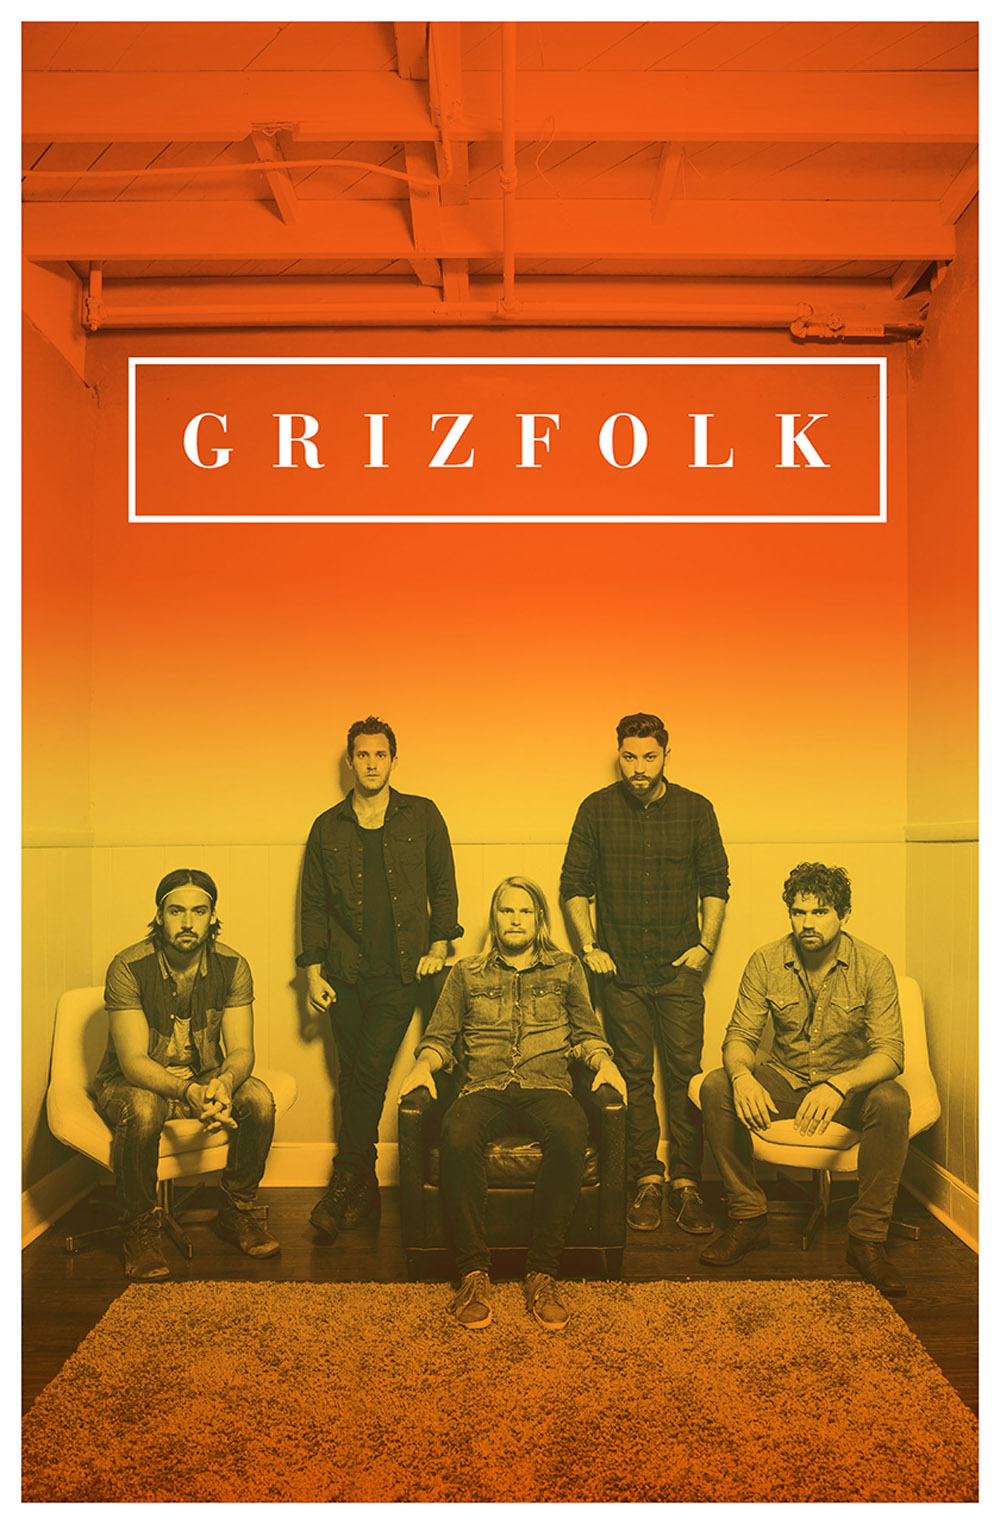 001_GRIZFOLK_MC_075.jpg